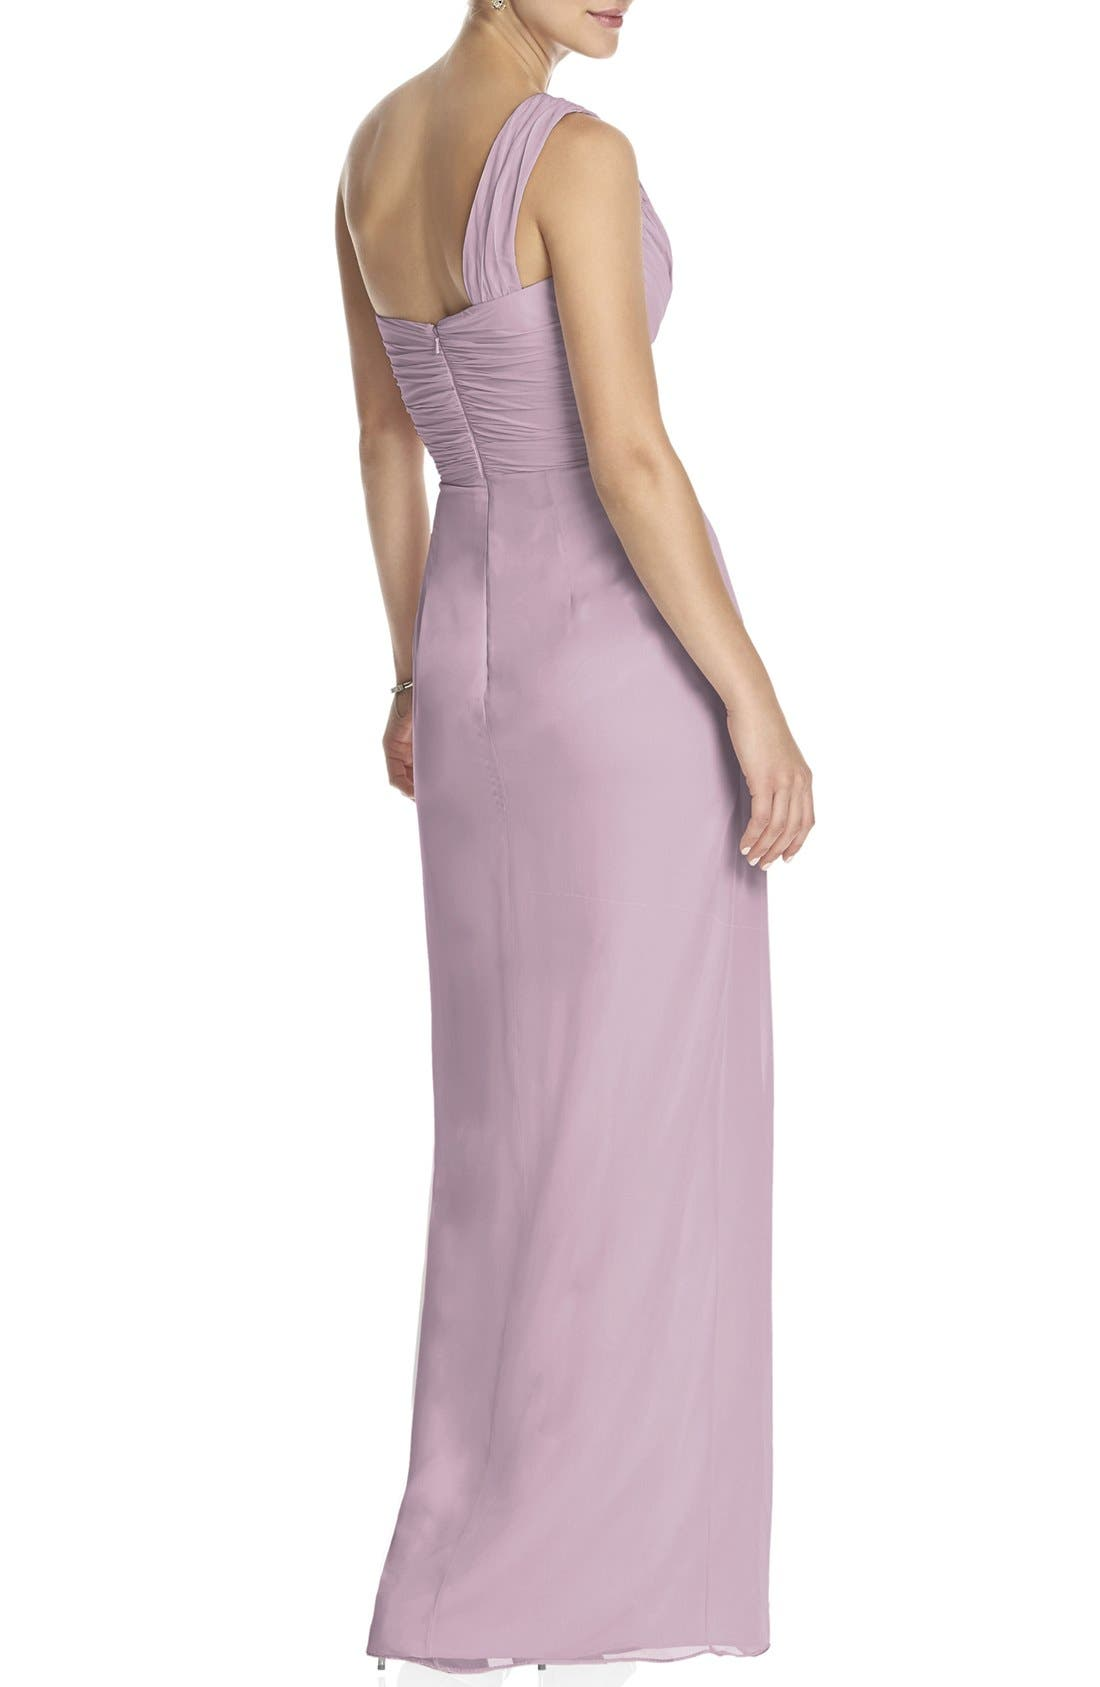 DessyCollection One-Shoulder Draped Chiffon Gown,                             Alternate thumbnail 2, color,                             654